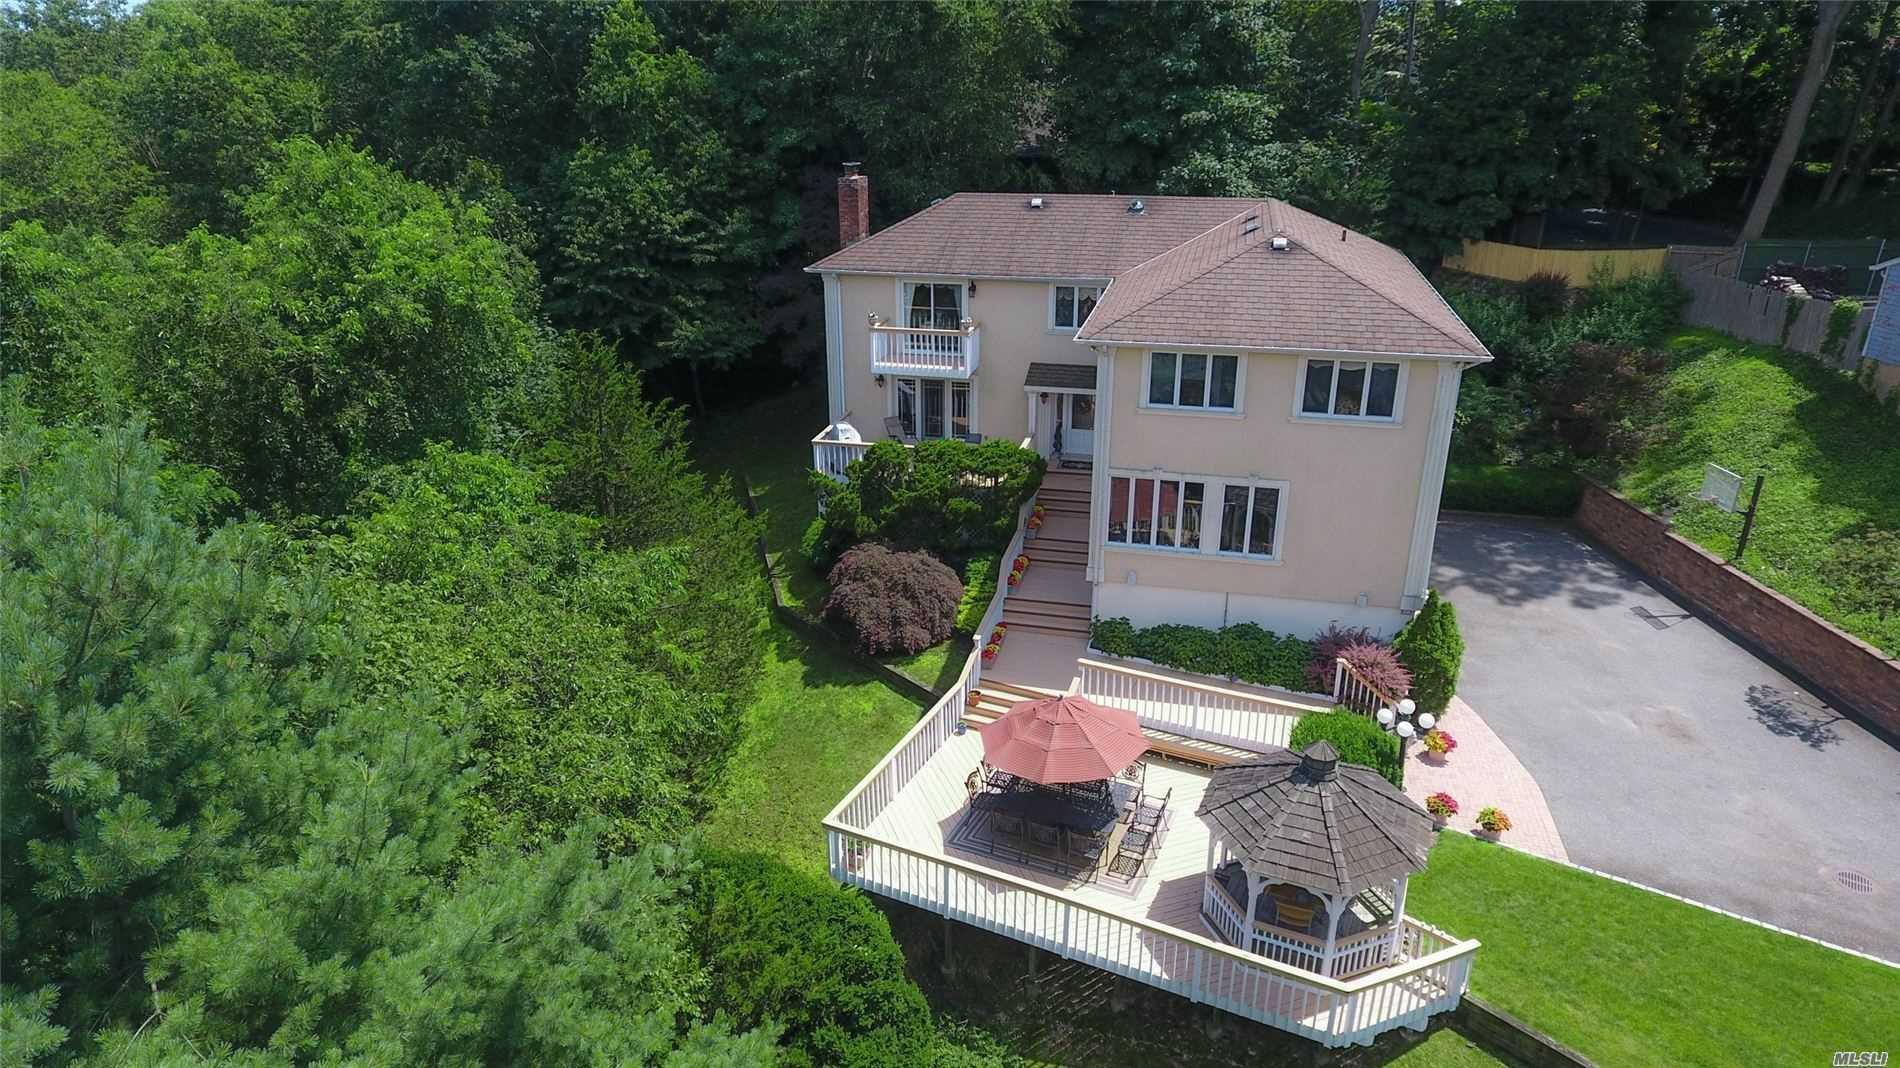 873 Oyster Bay Rd - East Norwich, New York